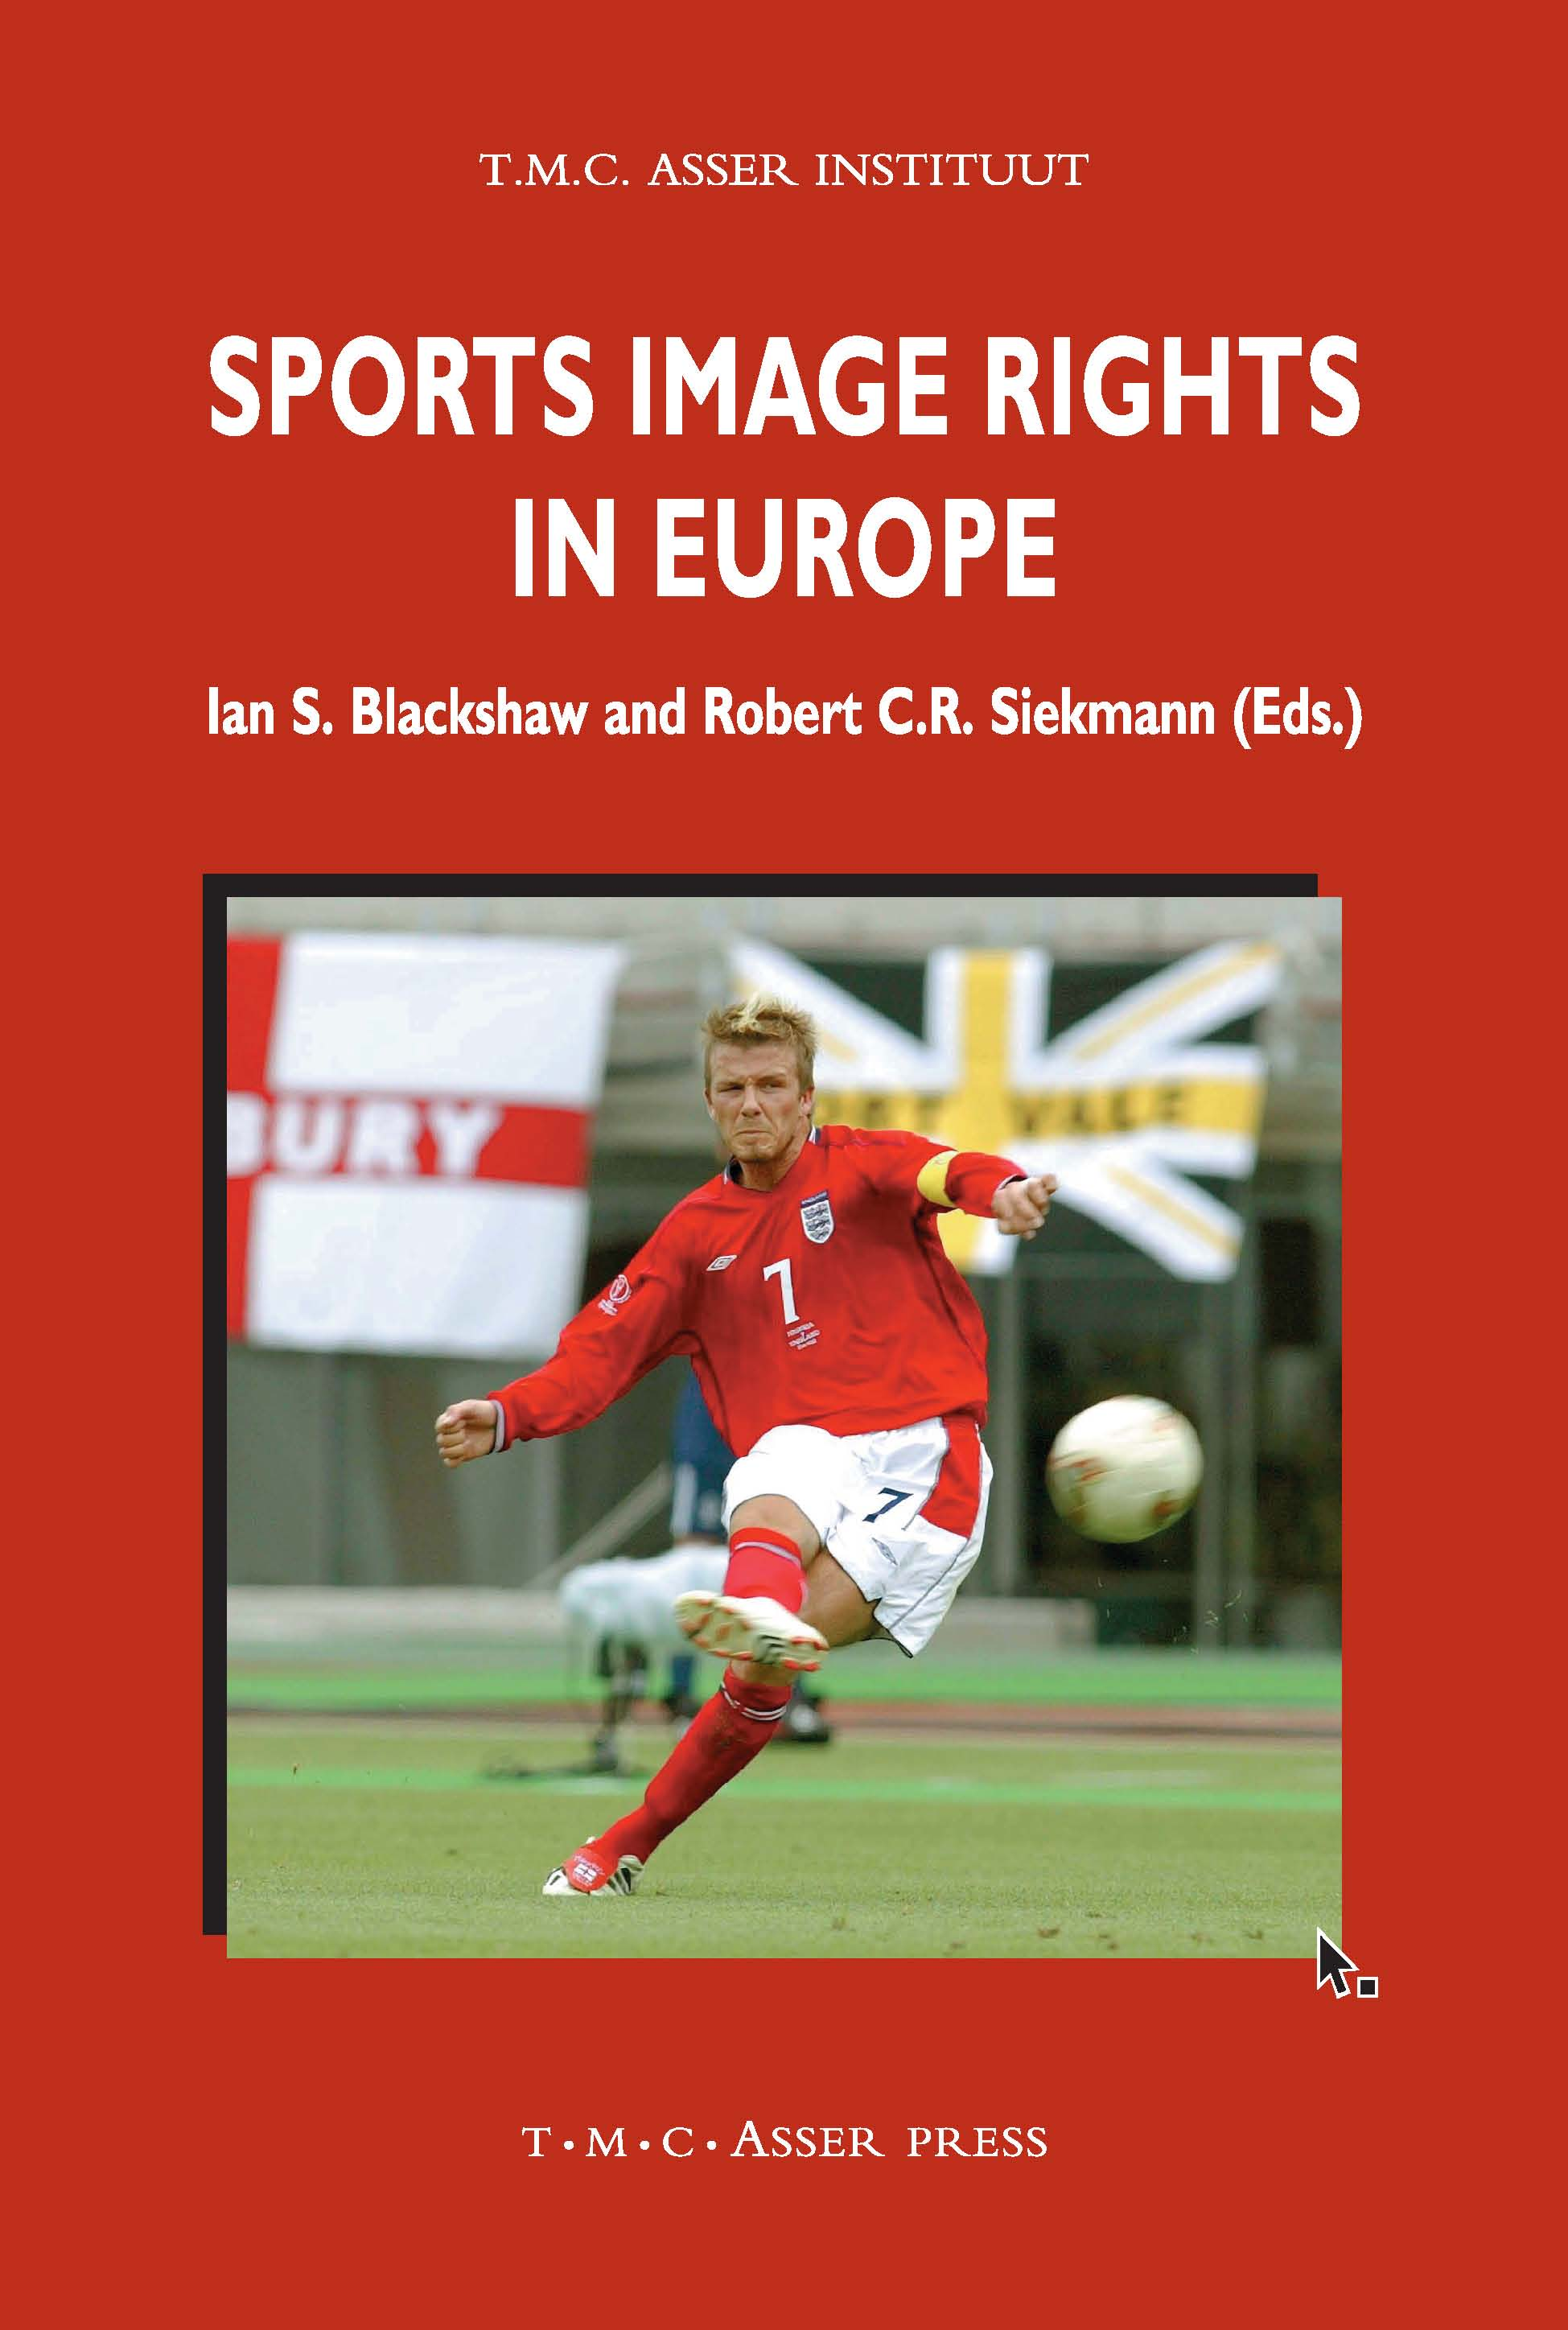 Sport Image Rights frontcover